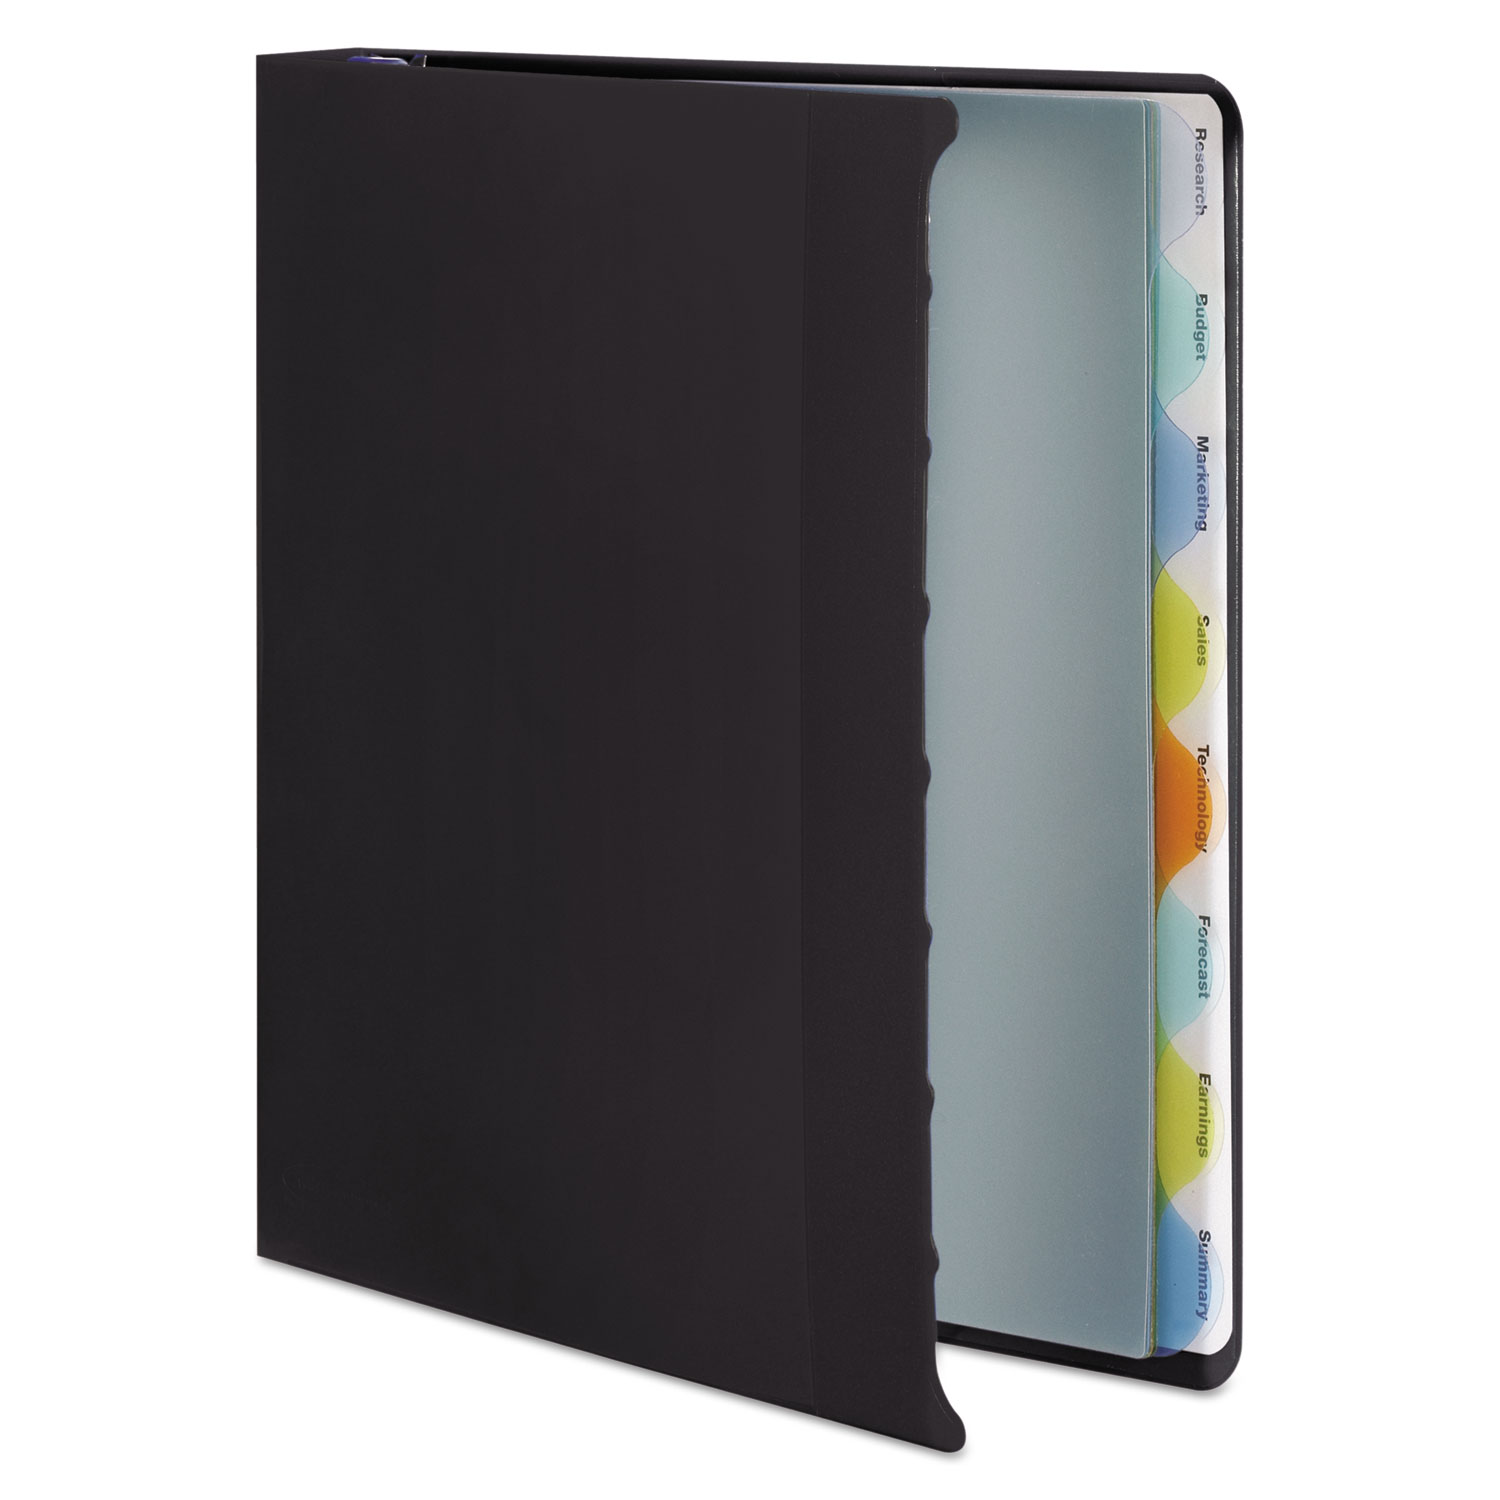 View-Tab Presentation Round Ring View Binder W/Tabs By